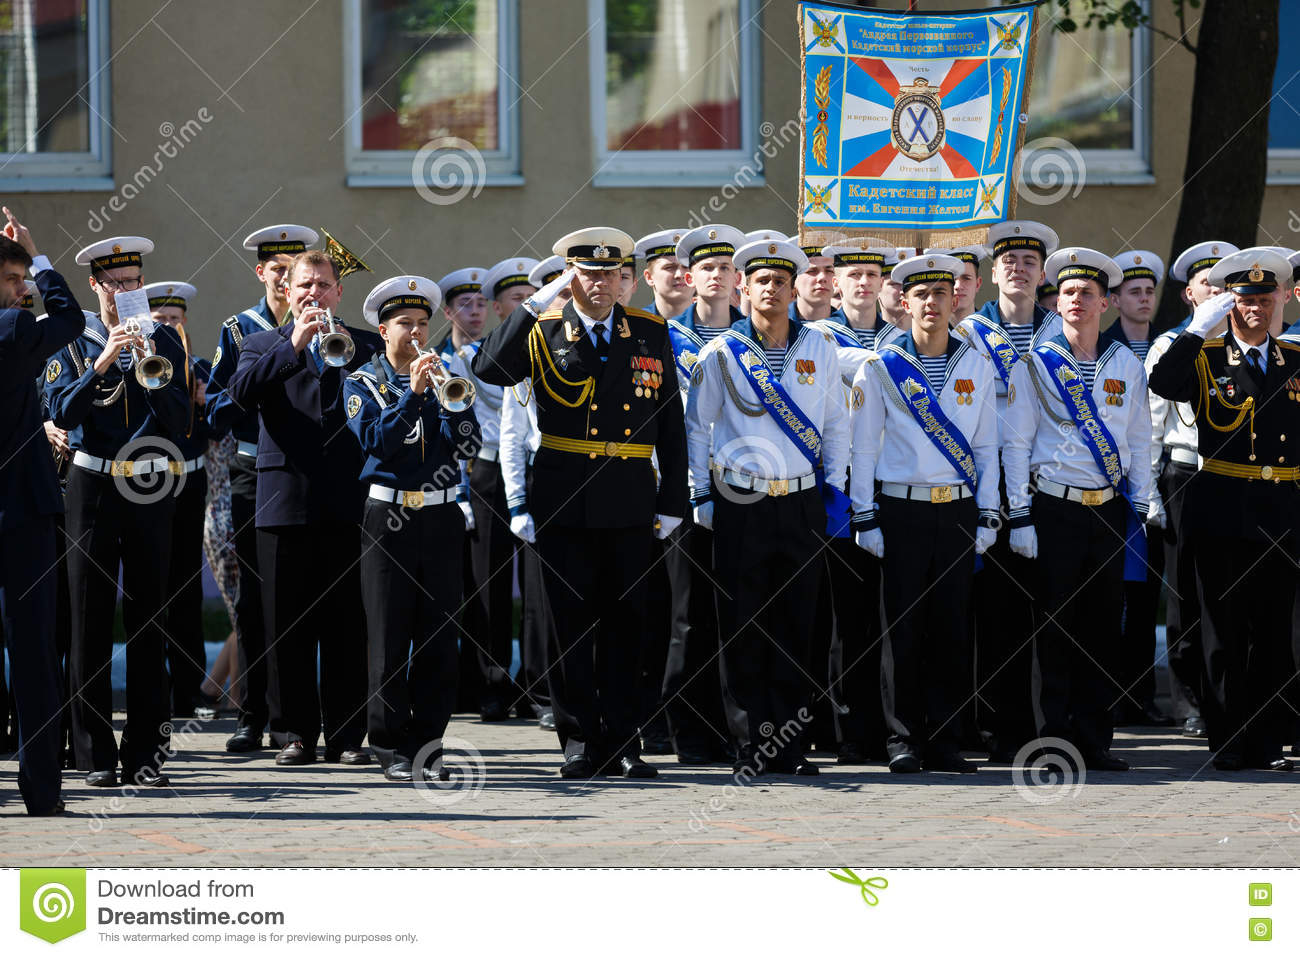 The Military Ceremony At The Sea Cadet Corps, Russia